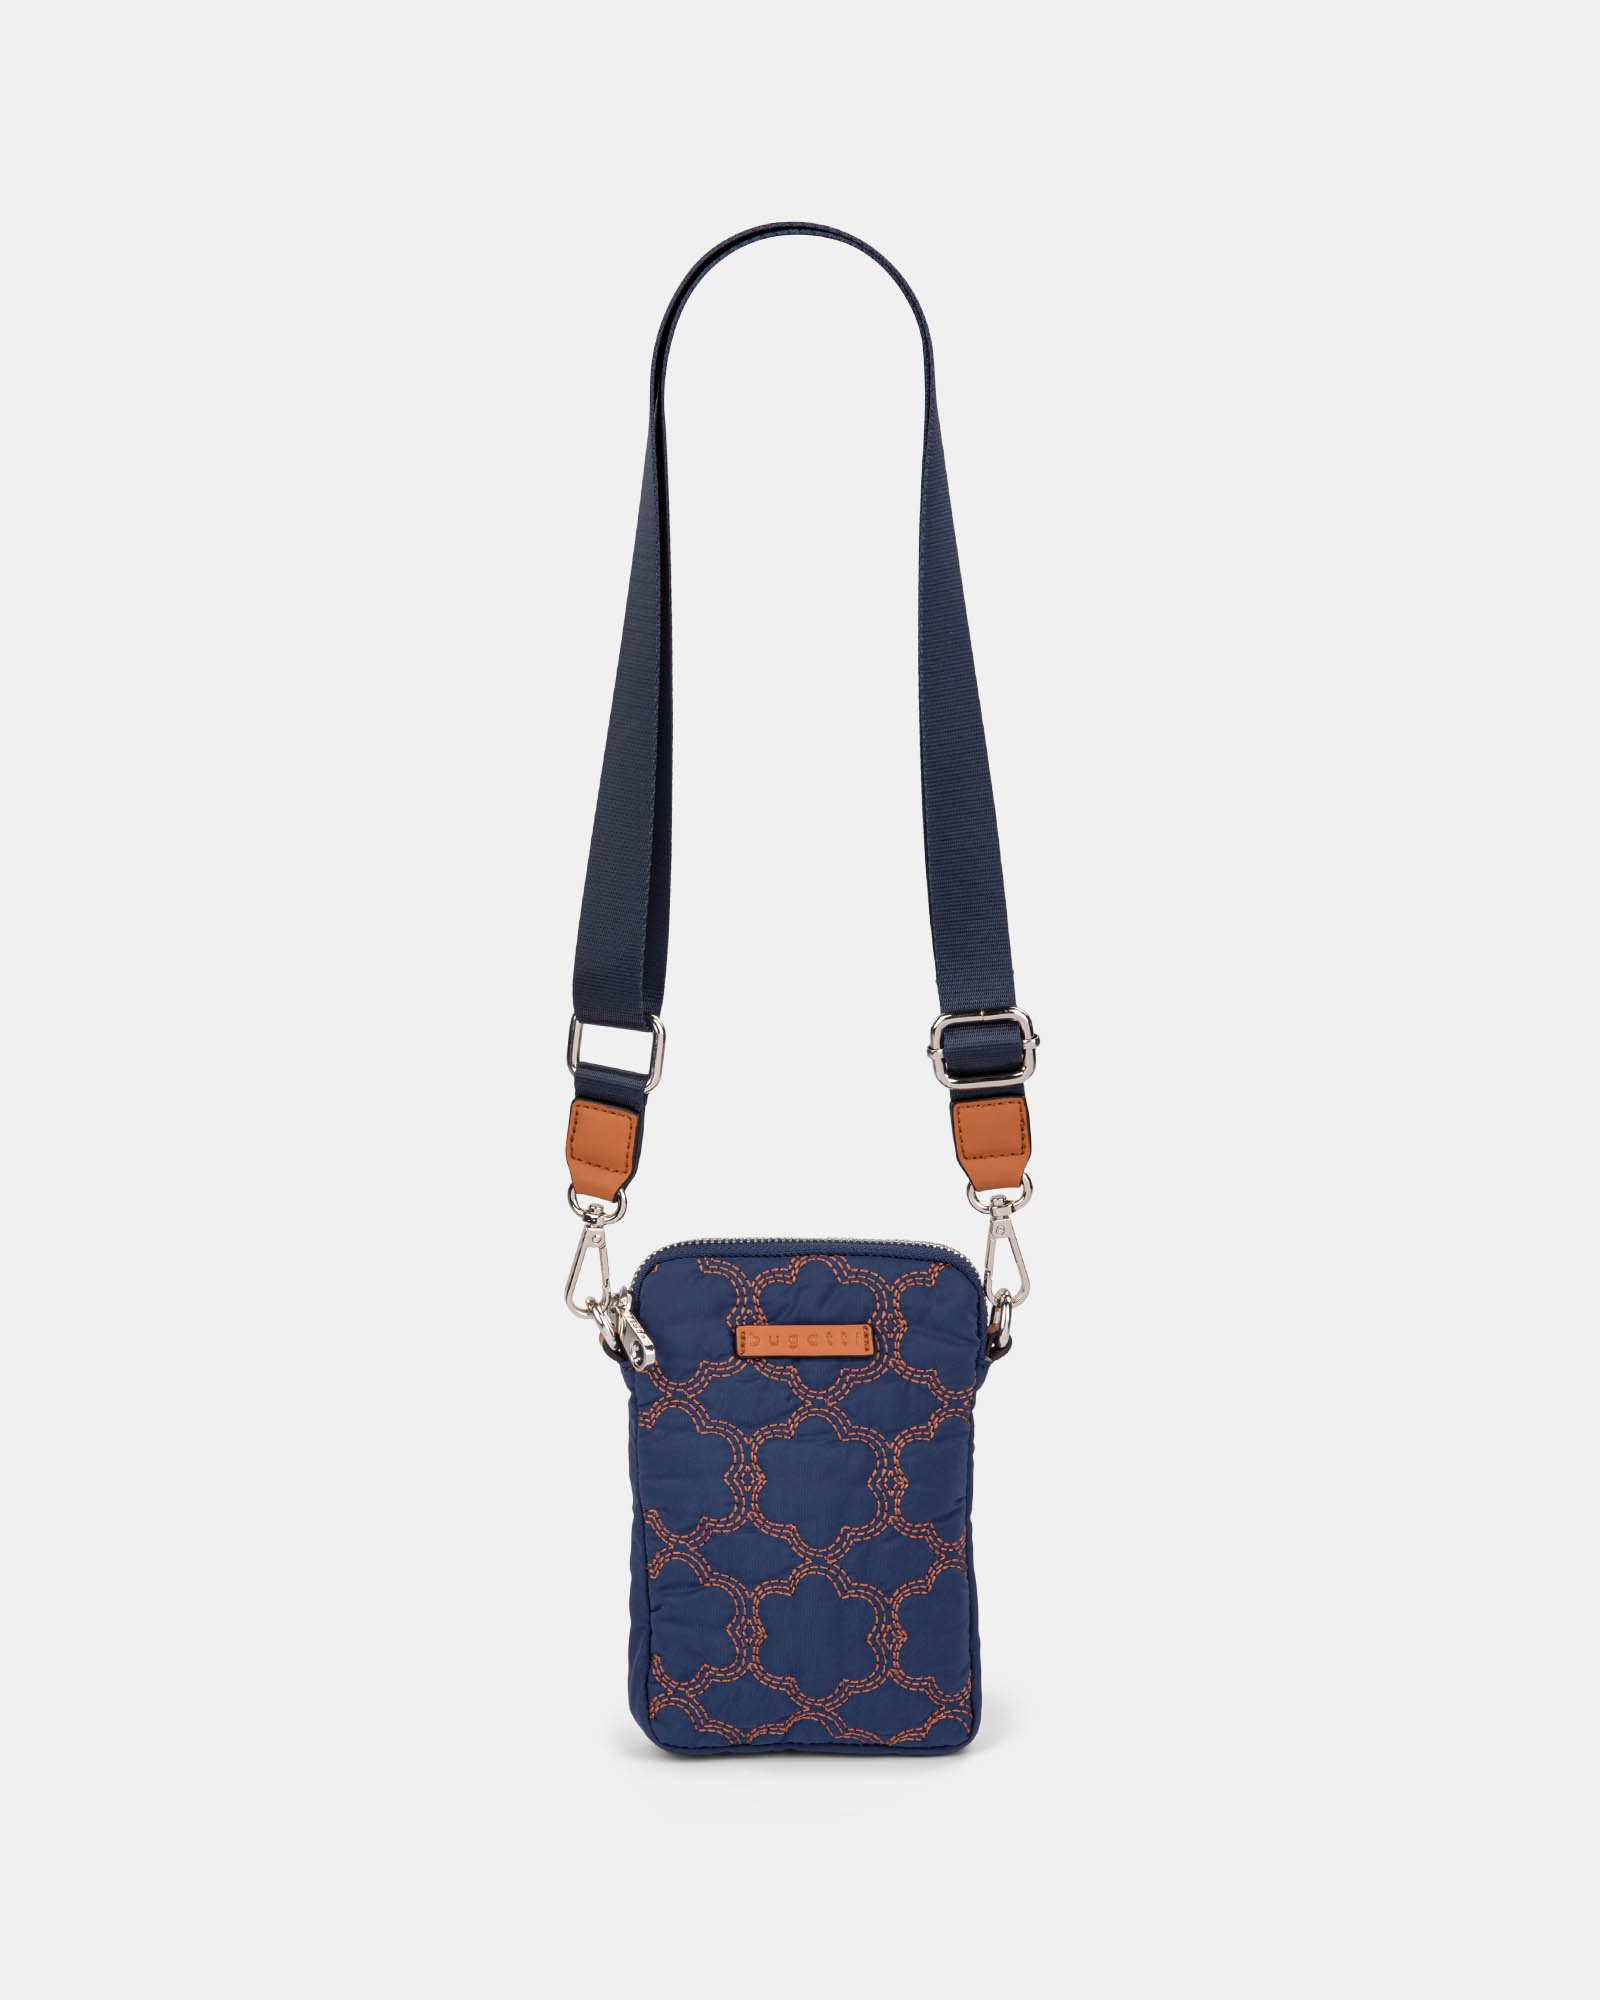 Montmartre - Mobile Case Crossbody with Top main zippered opening - navy - Bugatti - Zoom